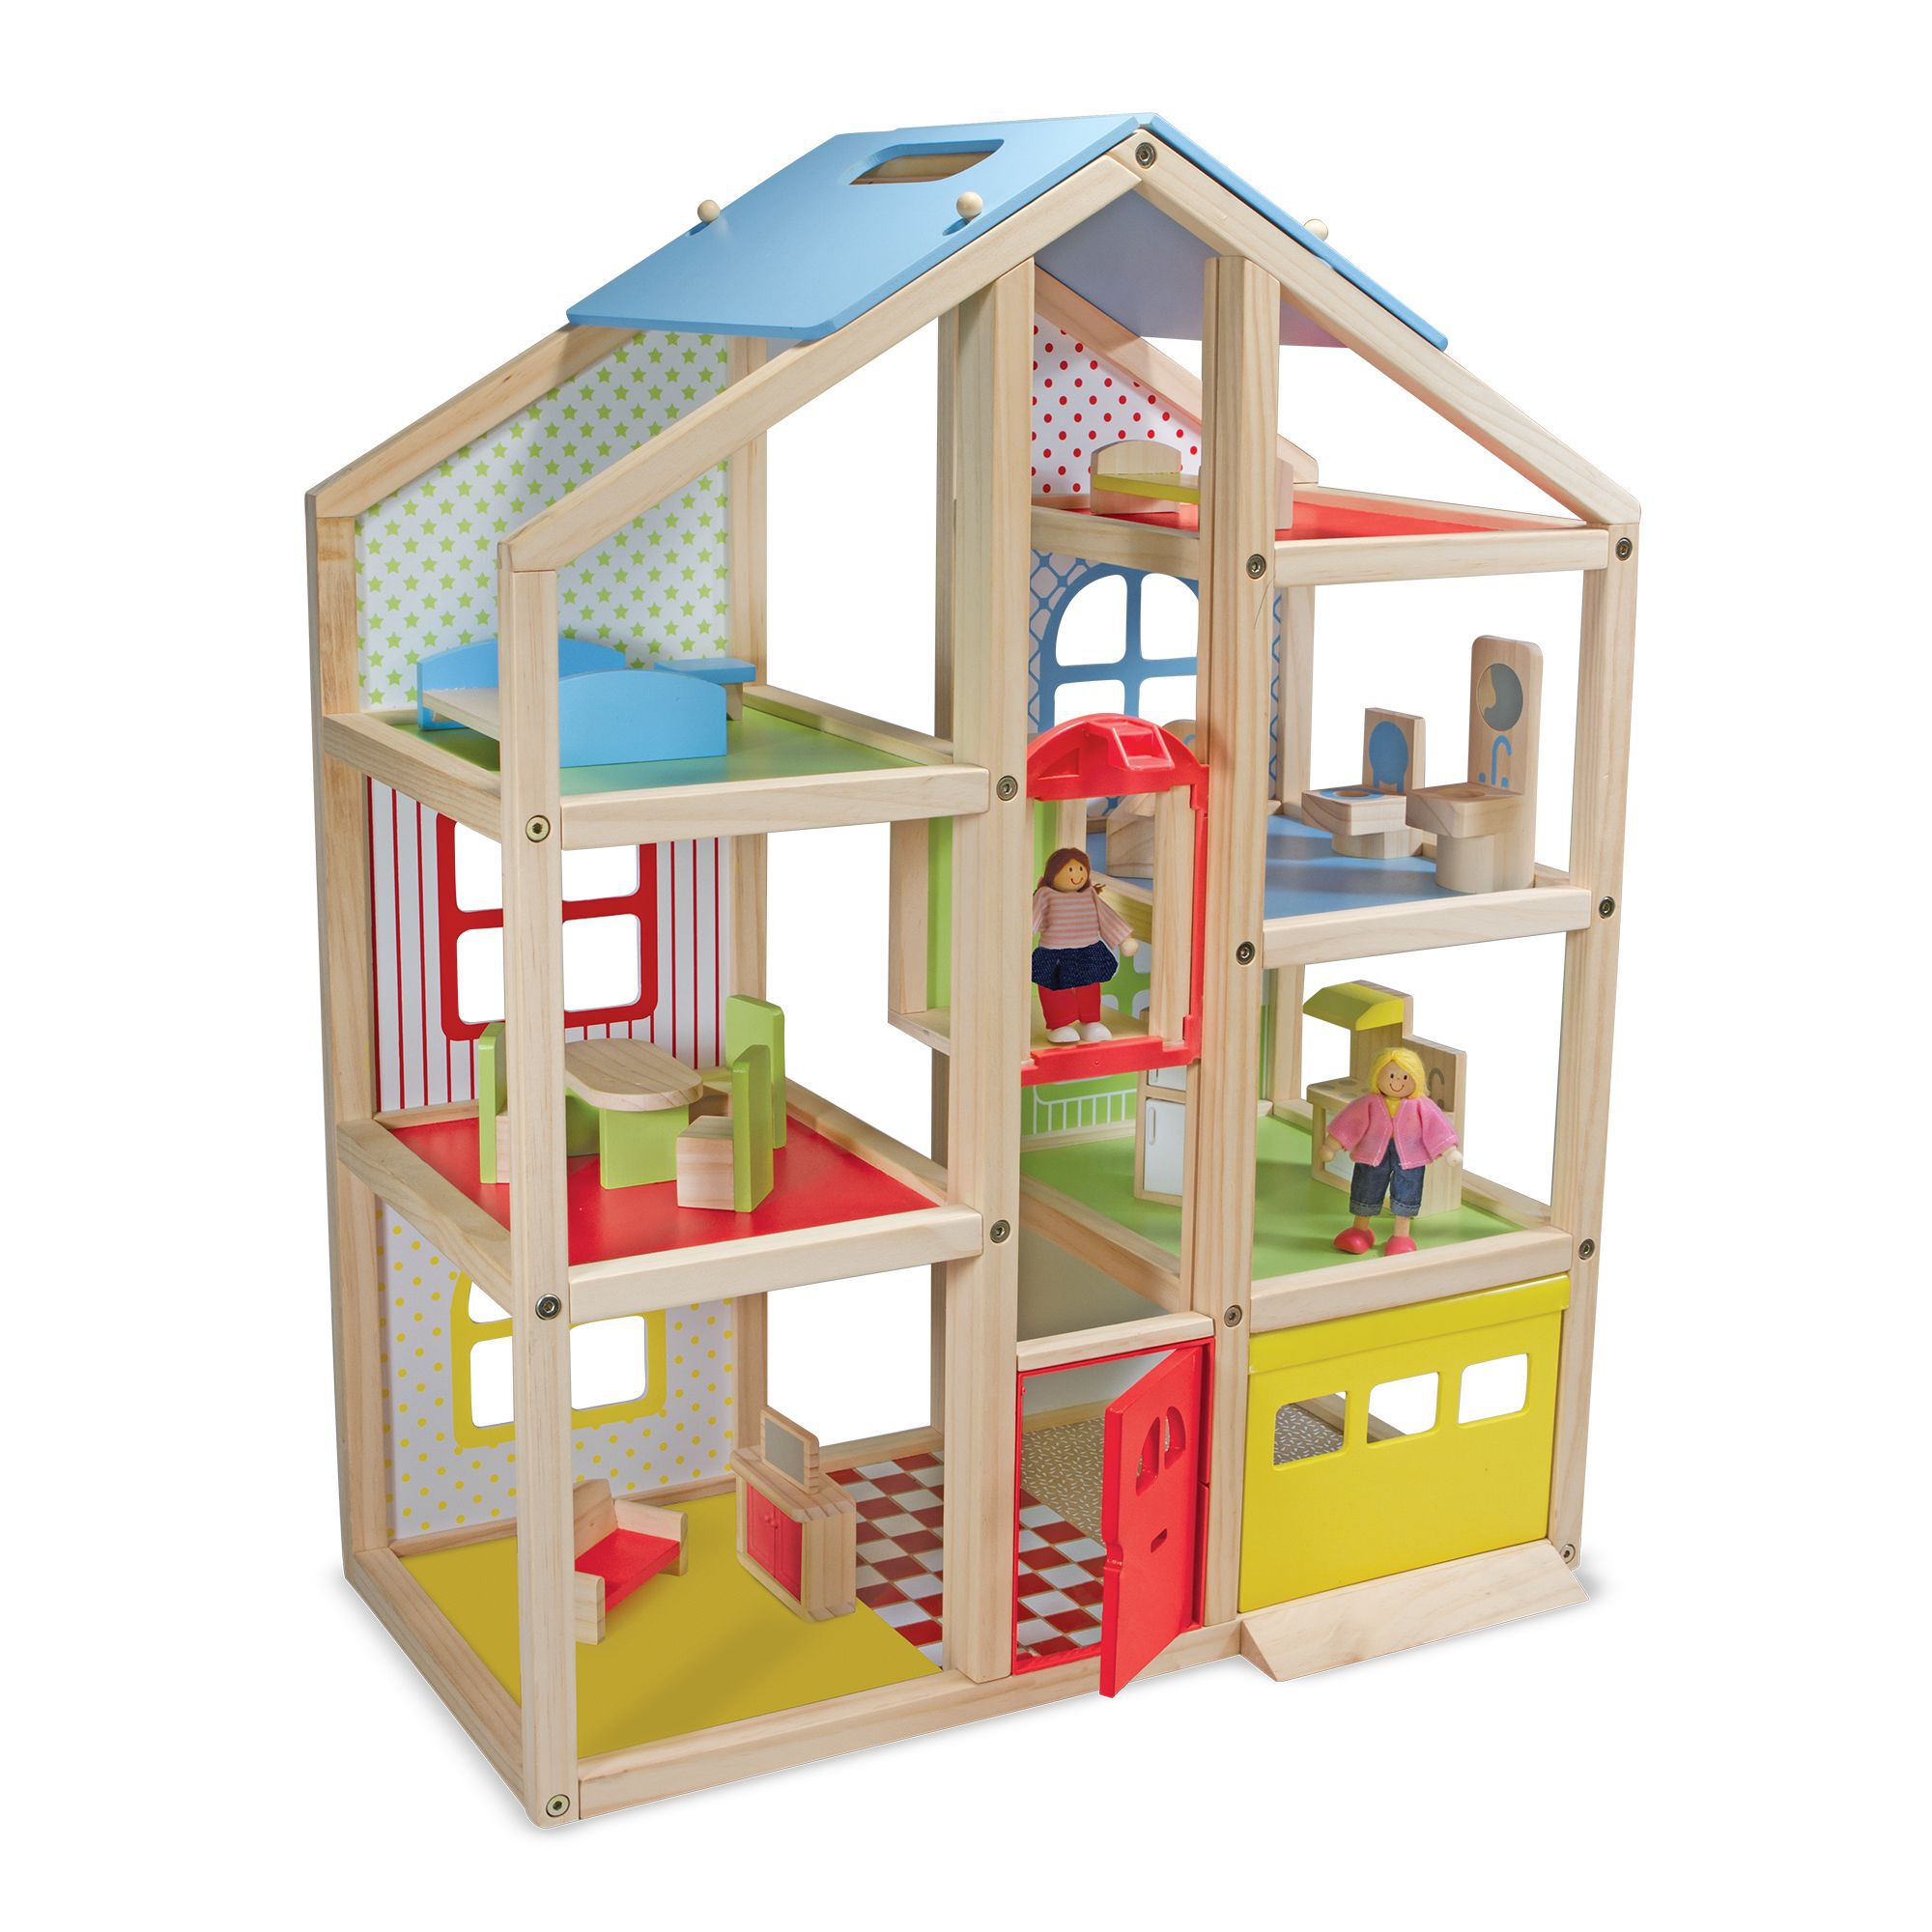 Superieur Hi Rise Wooden Dollhouse And Furniture Set